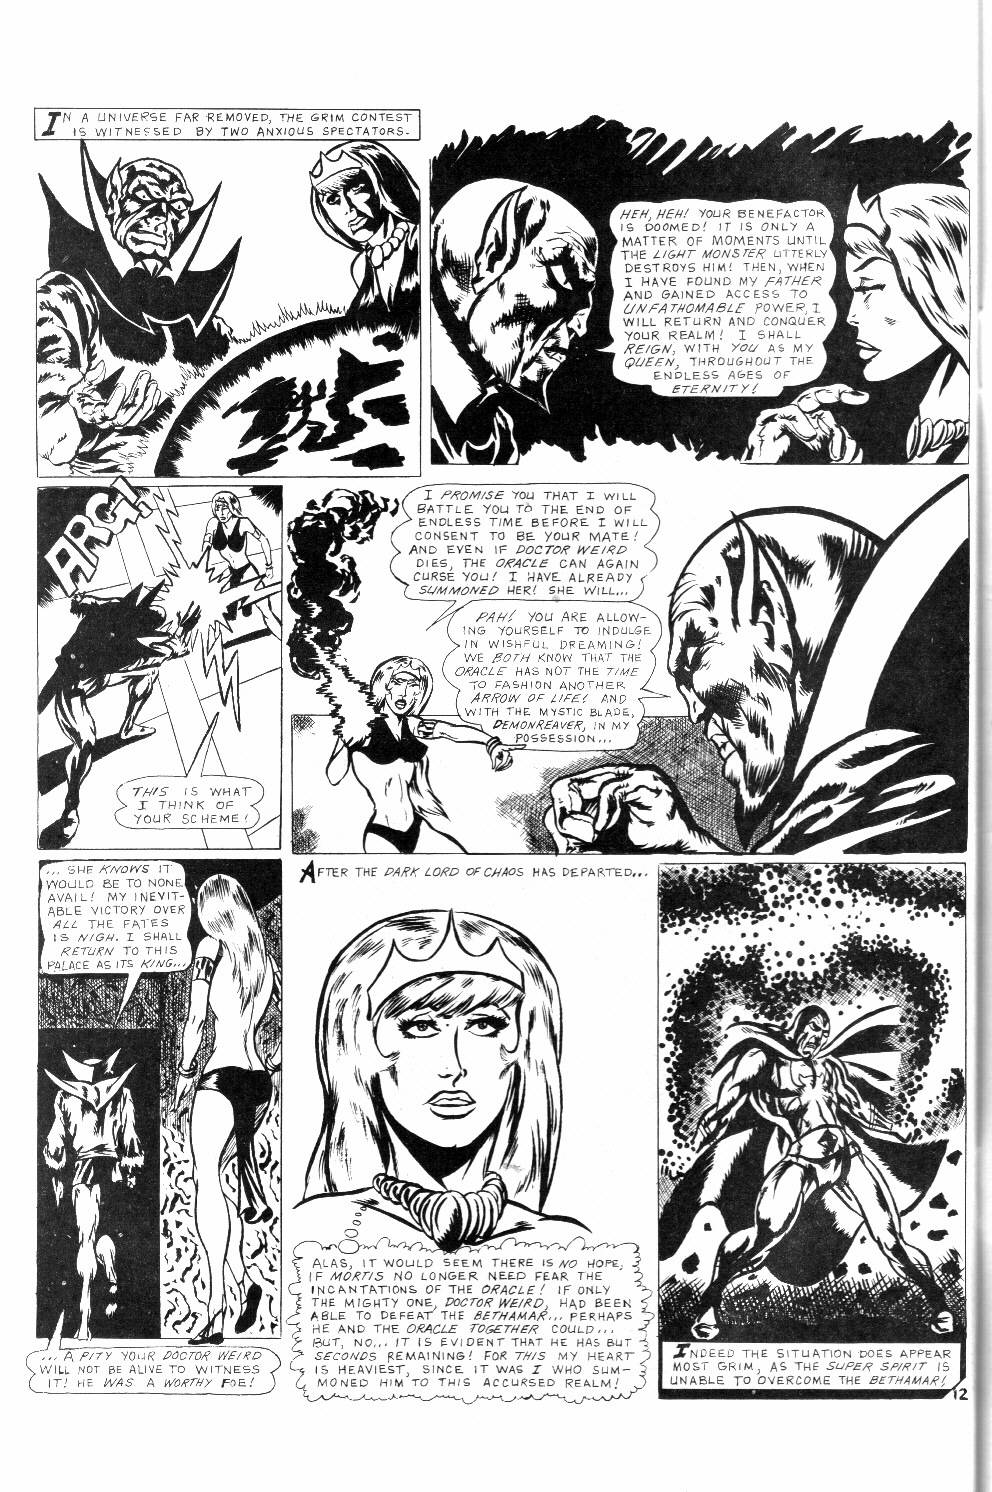 Read online Dr. Weird Special comic -  Issue # Full - 54